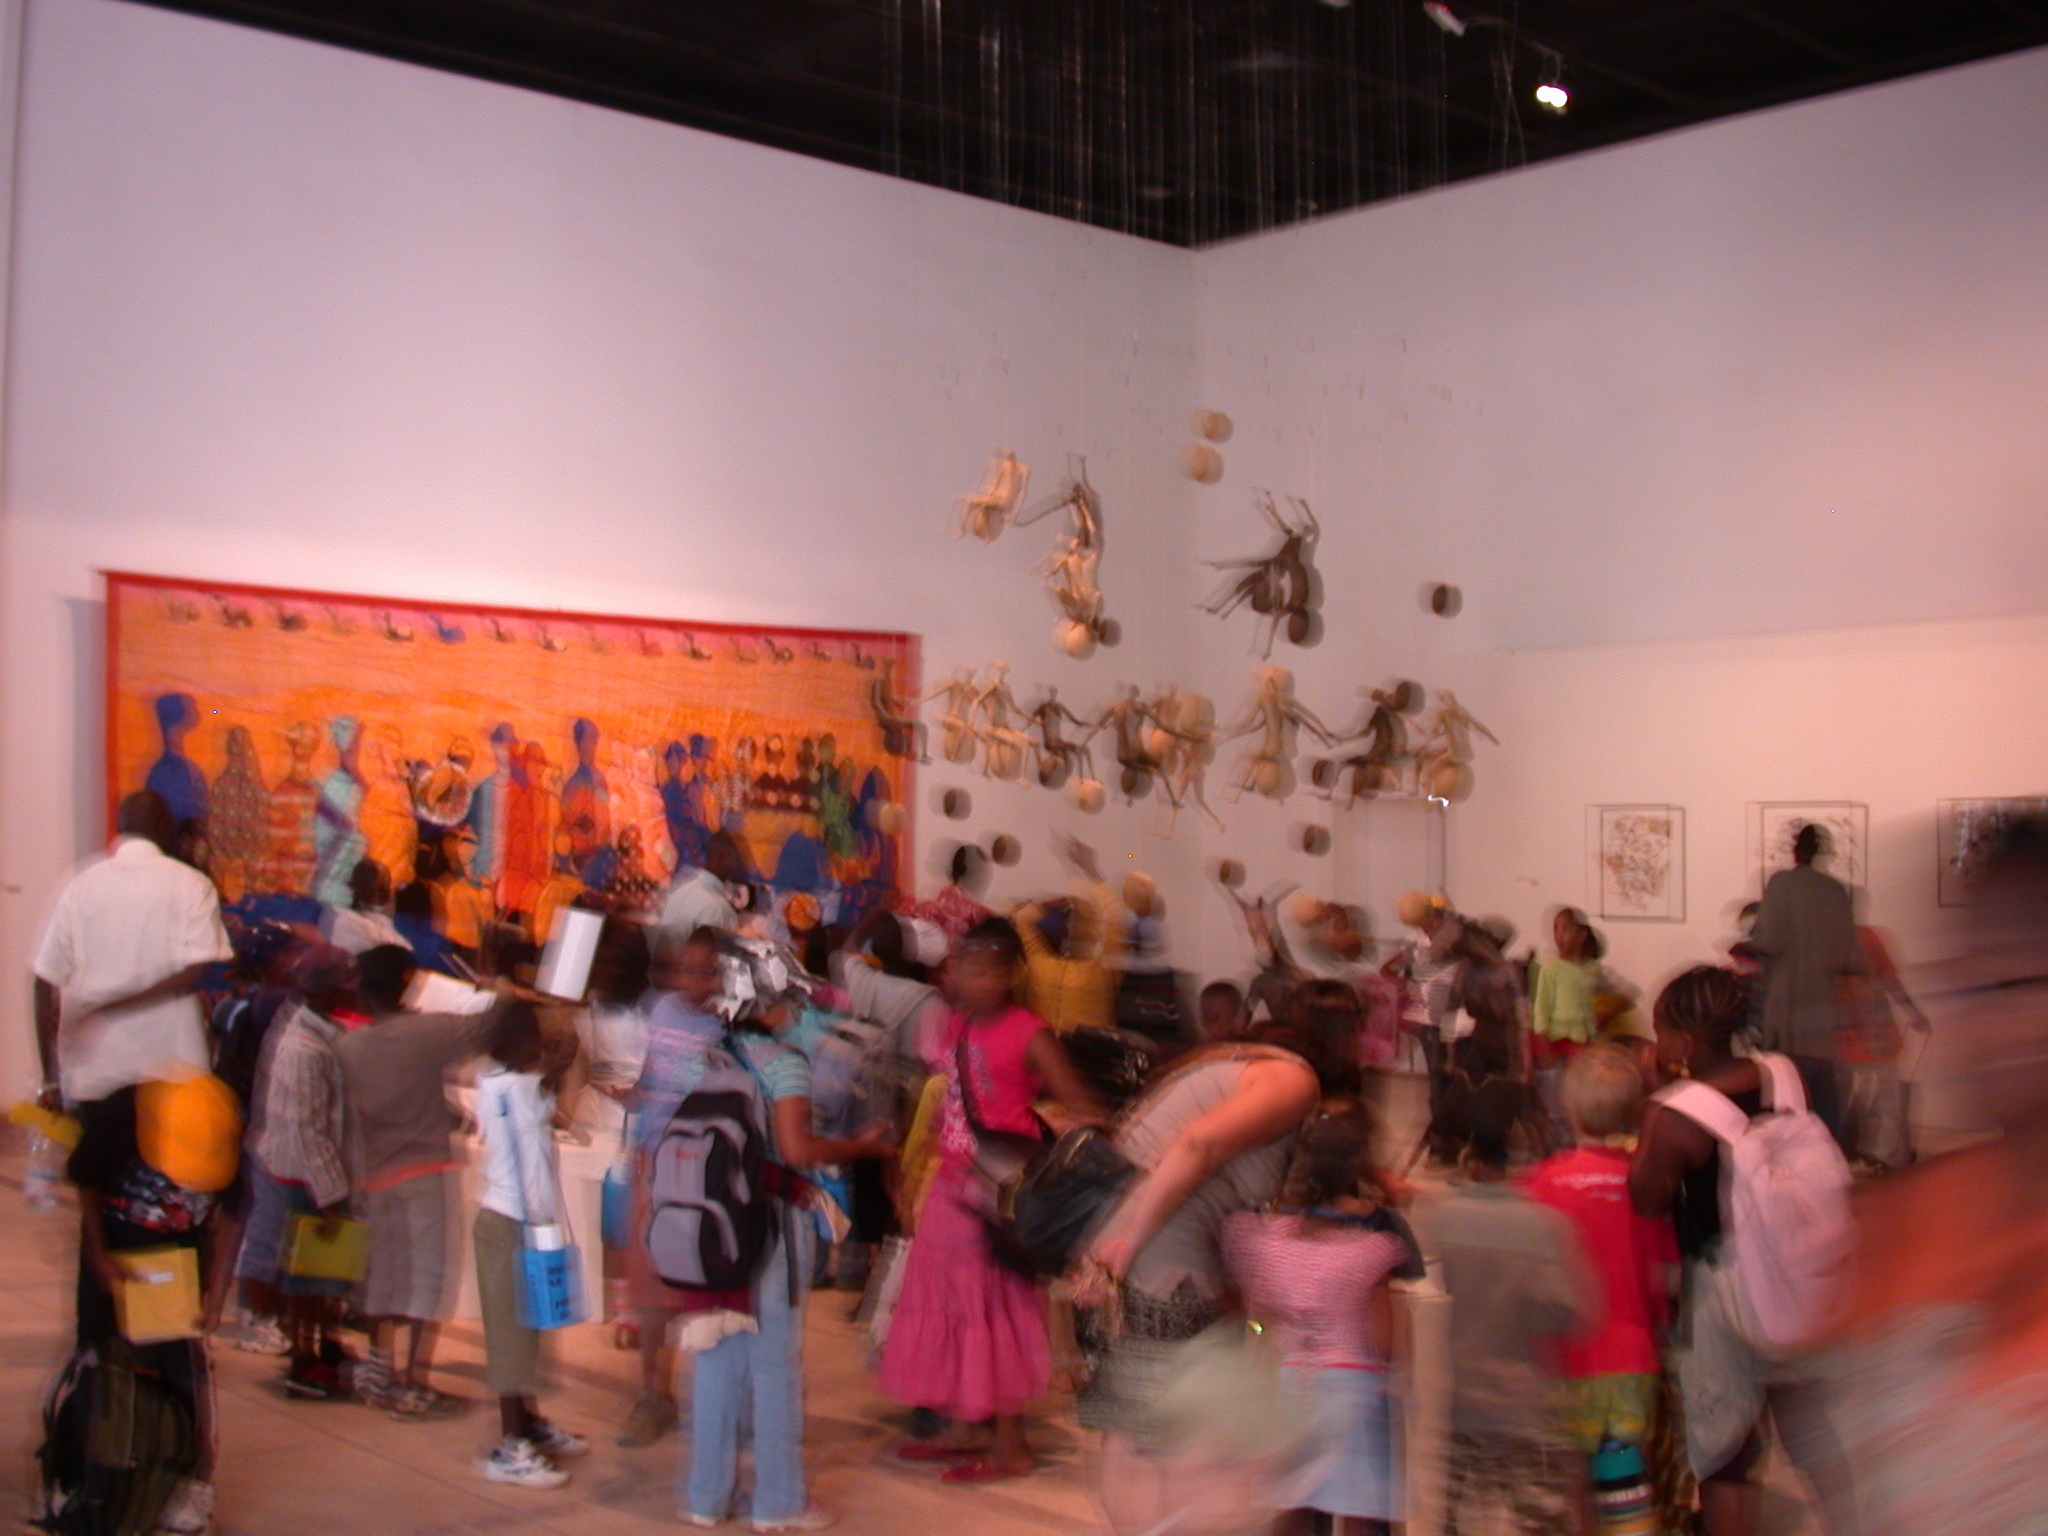 Children Viewing Exhibit, Musee Nationale du Mali, Bamako, Mali